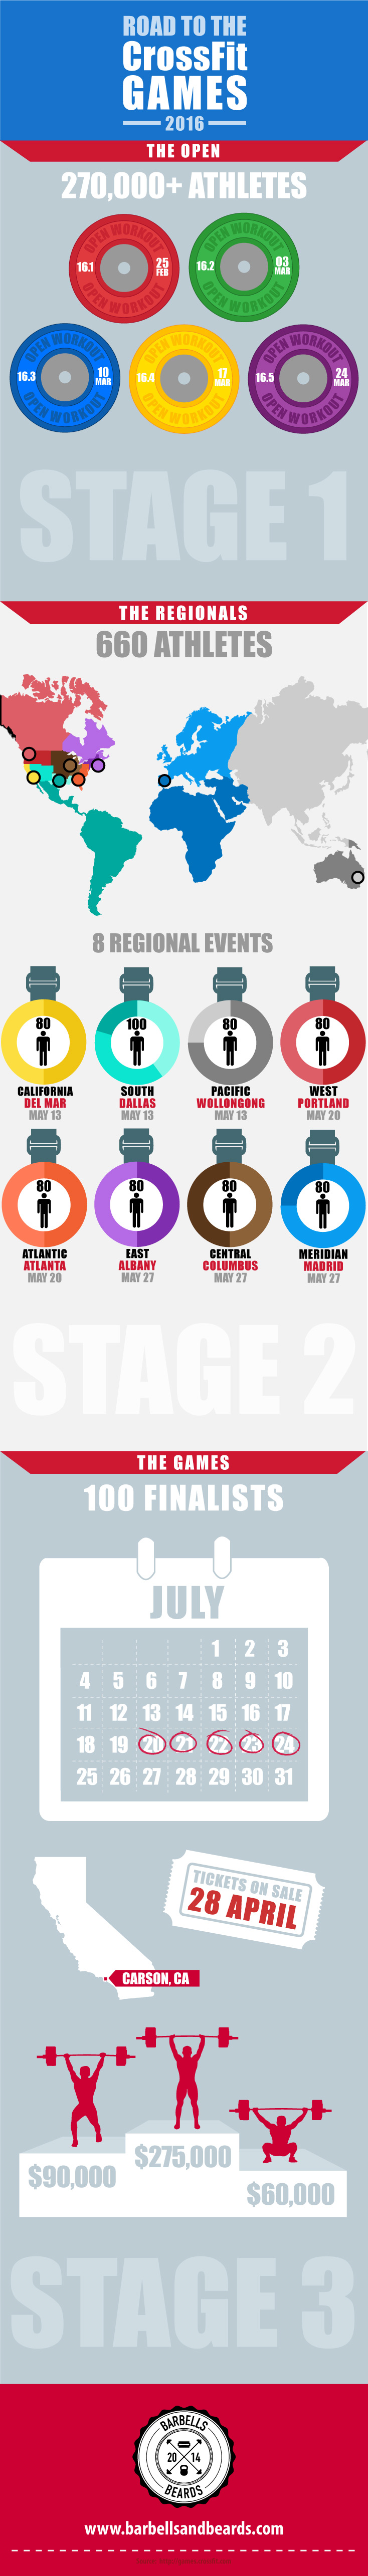 Road to the CrossFit Games 2016 Infographic